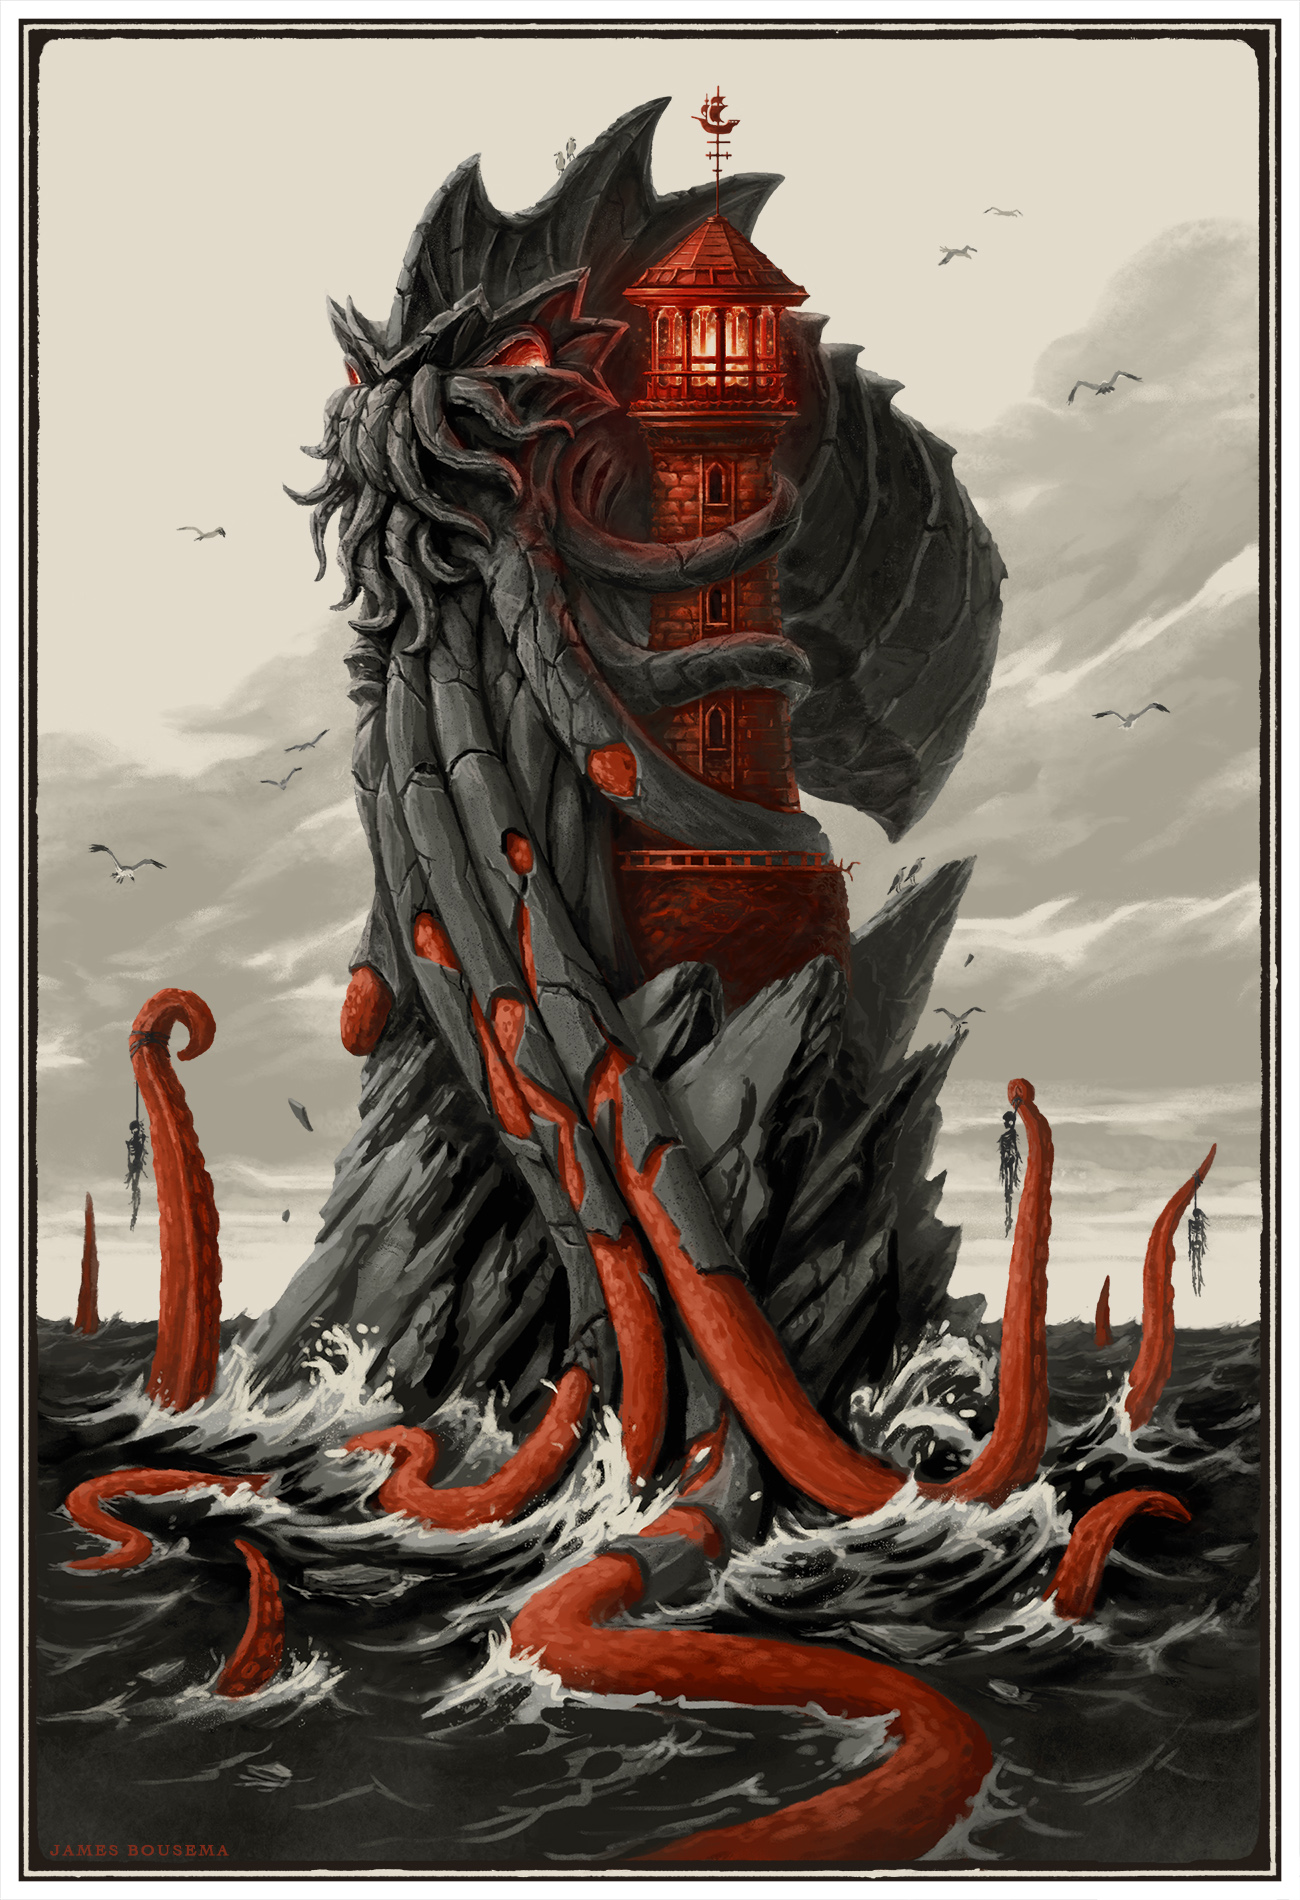 Long ago, the great creature from the deep rose to the surface, drawn to the call of the scarlet lighthouse. Bewitched by its light, the creature gradually turned to stone, melding into the lighthouse's edifice until the glowing light ebbed into darkness.      Now, the creature waits only until the light shines again to break free and unleash its power.   Done in Photoshop CS6